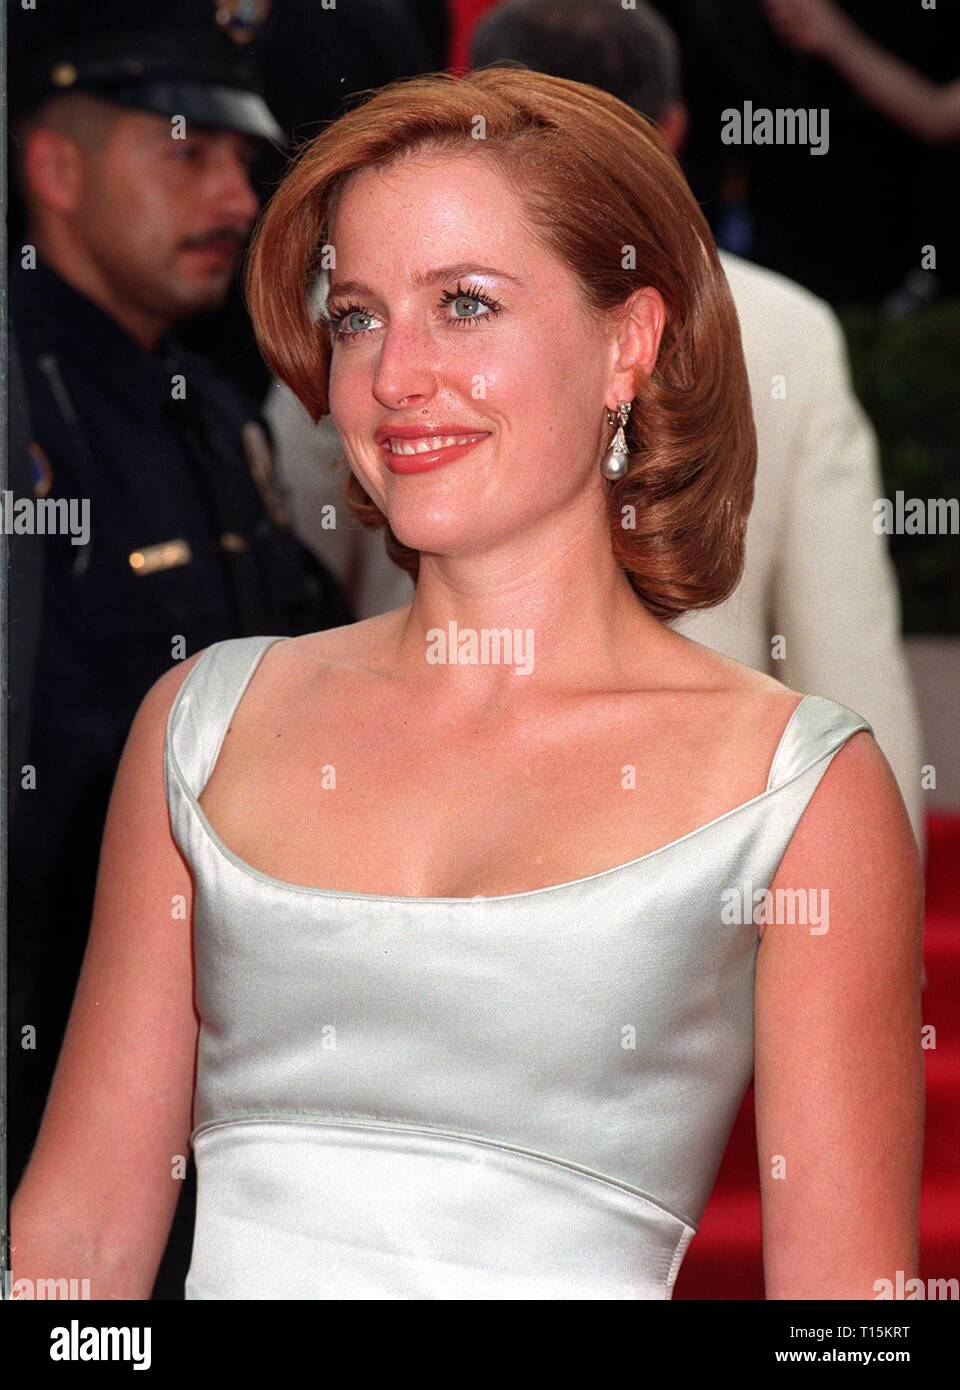 LOS ANGELES, CA. September 14, 1997: X-Files star Gillian Anderson at the Emmy Awards in Pasadena. - Stock Image